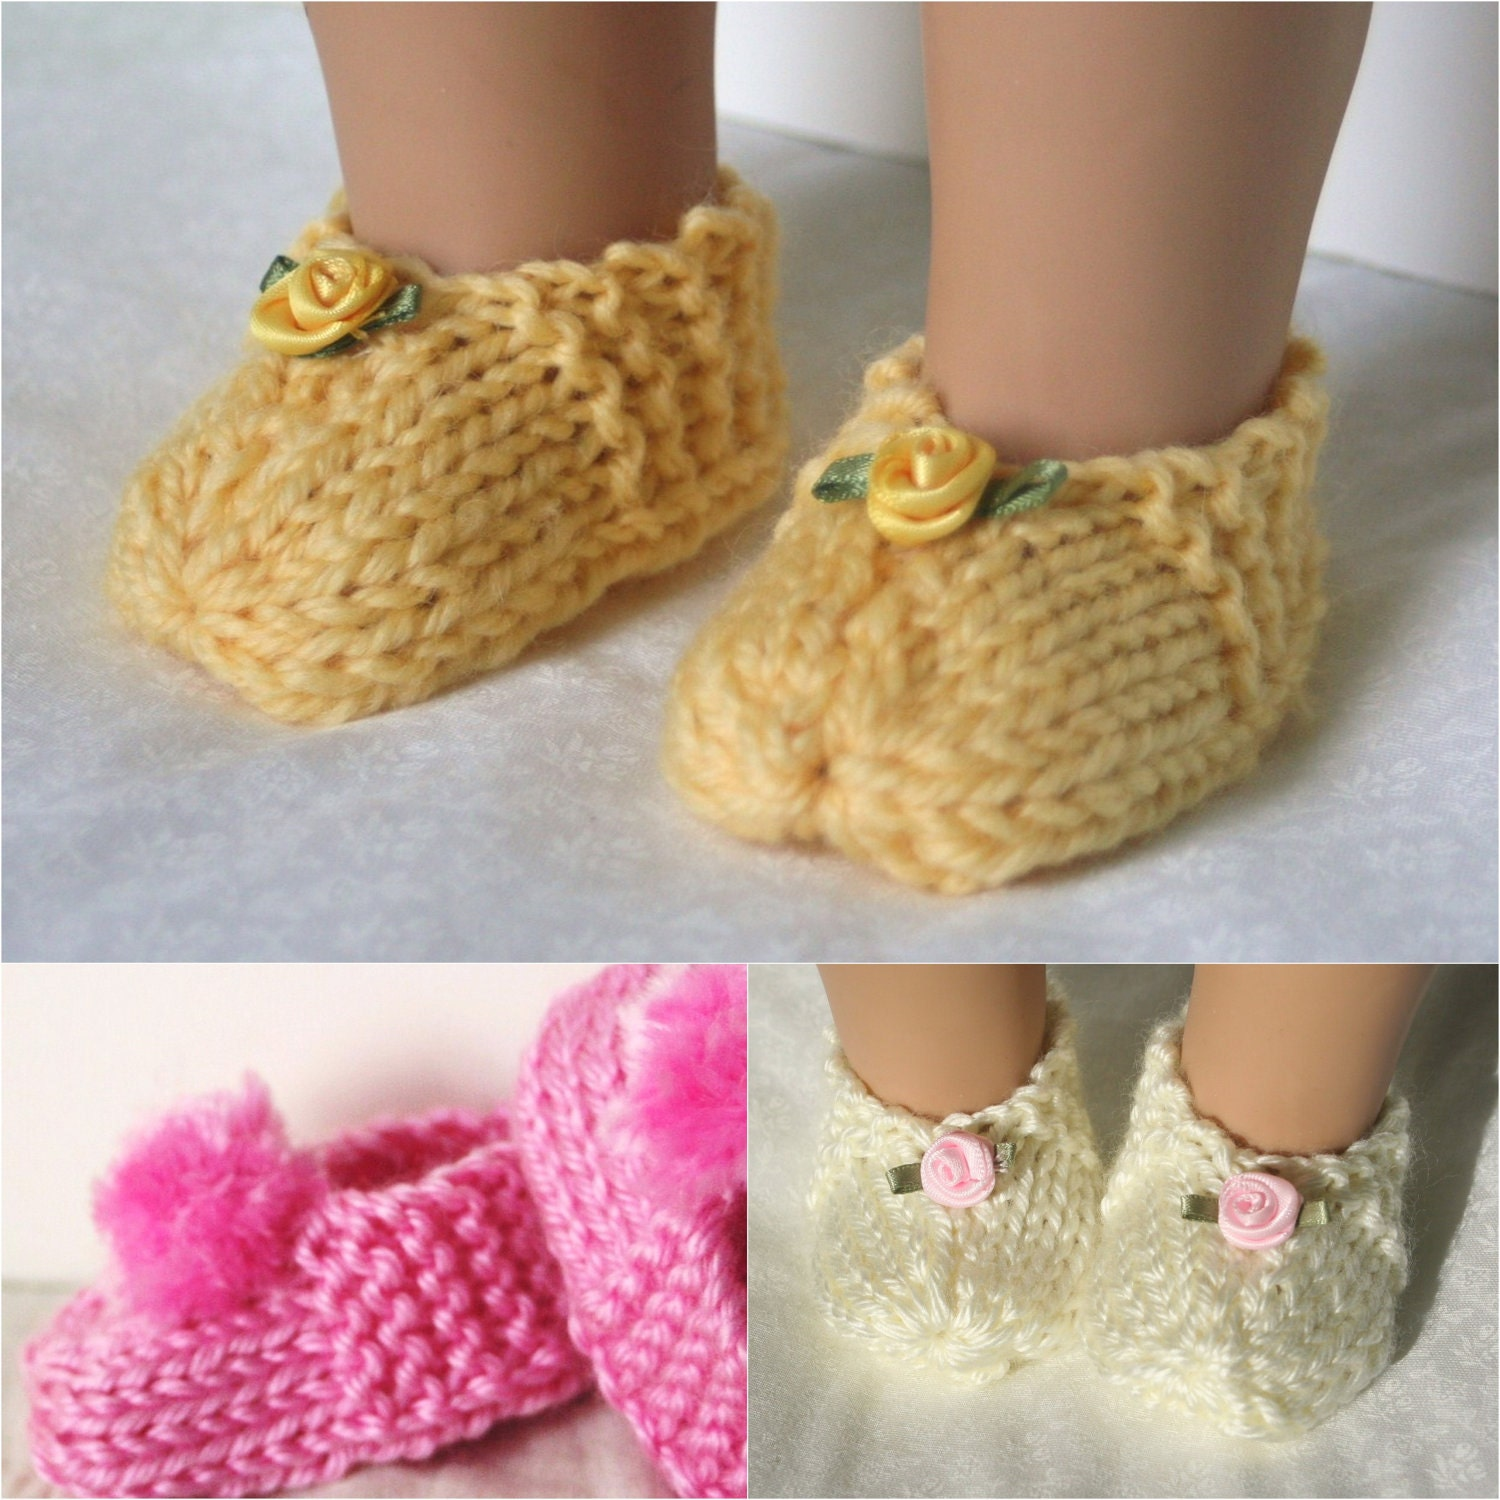 Pattern for Doll Slippers Booties knitting pattern by LynettesArt